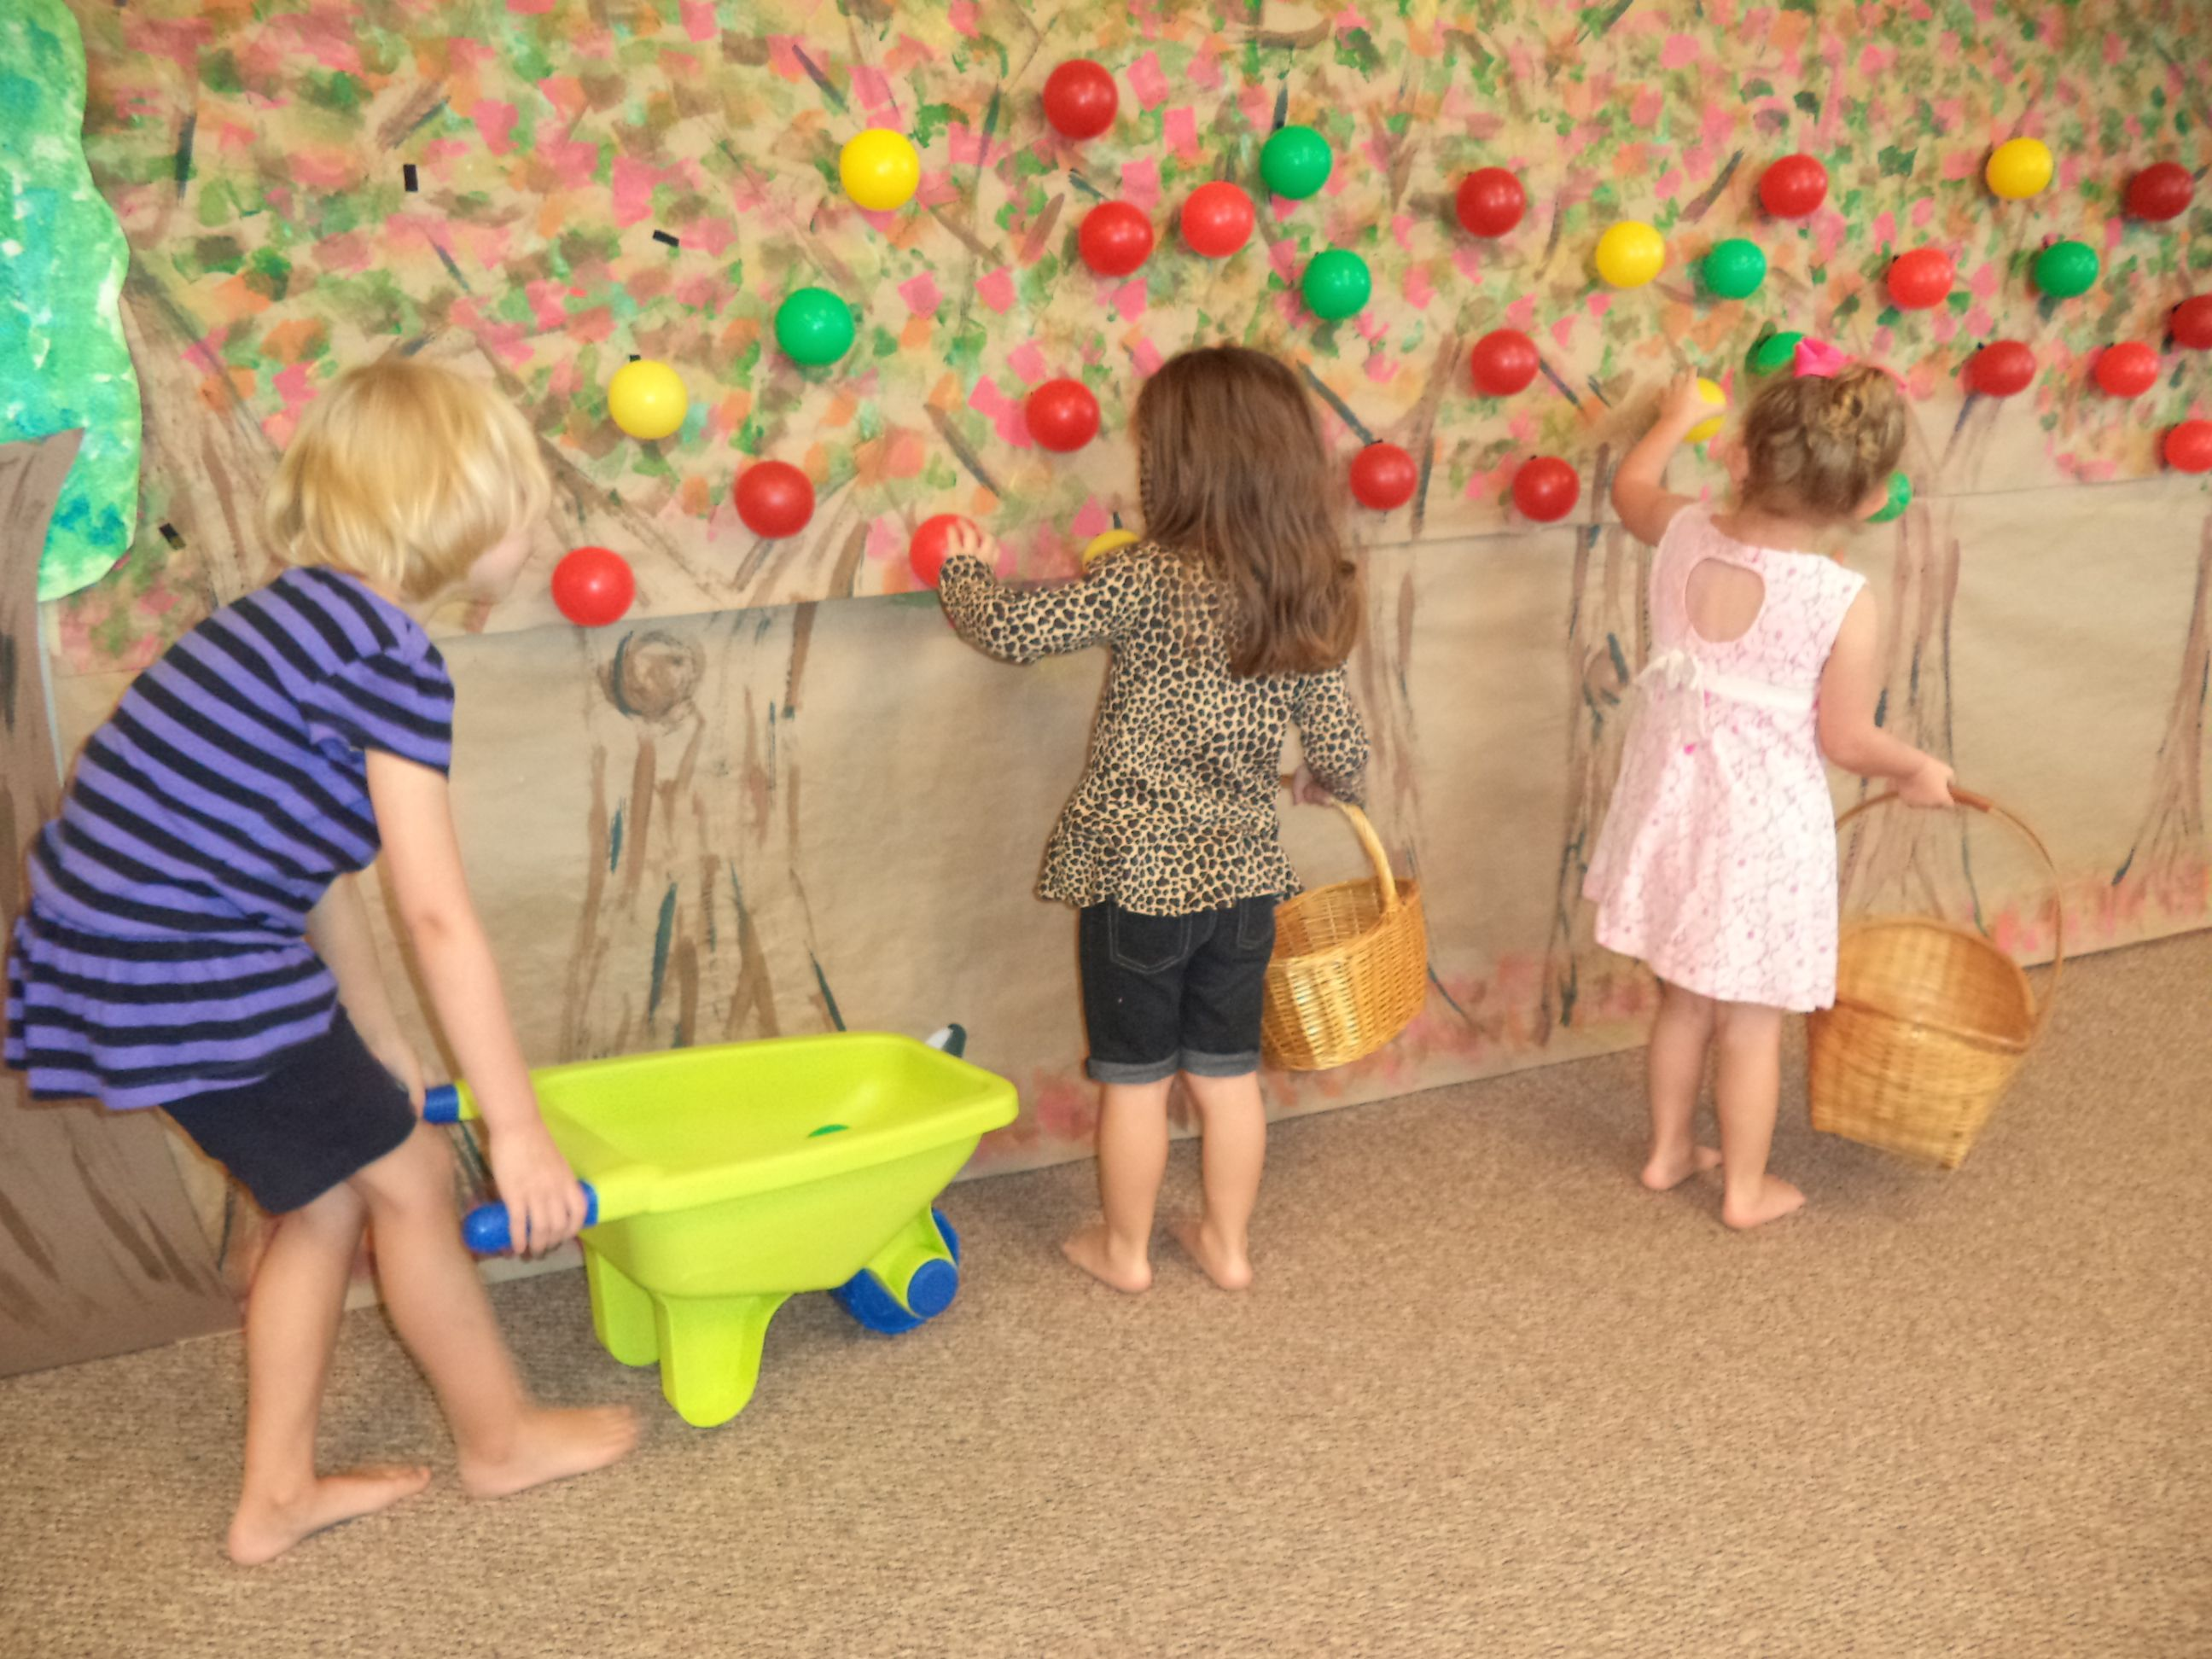 Interactive apple picking wall for dramatic play. Make a tree mural, add velcro to wall and to ballpit balls.  Use baskets, wheelbarrows.